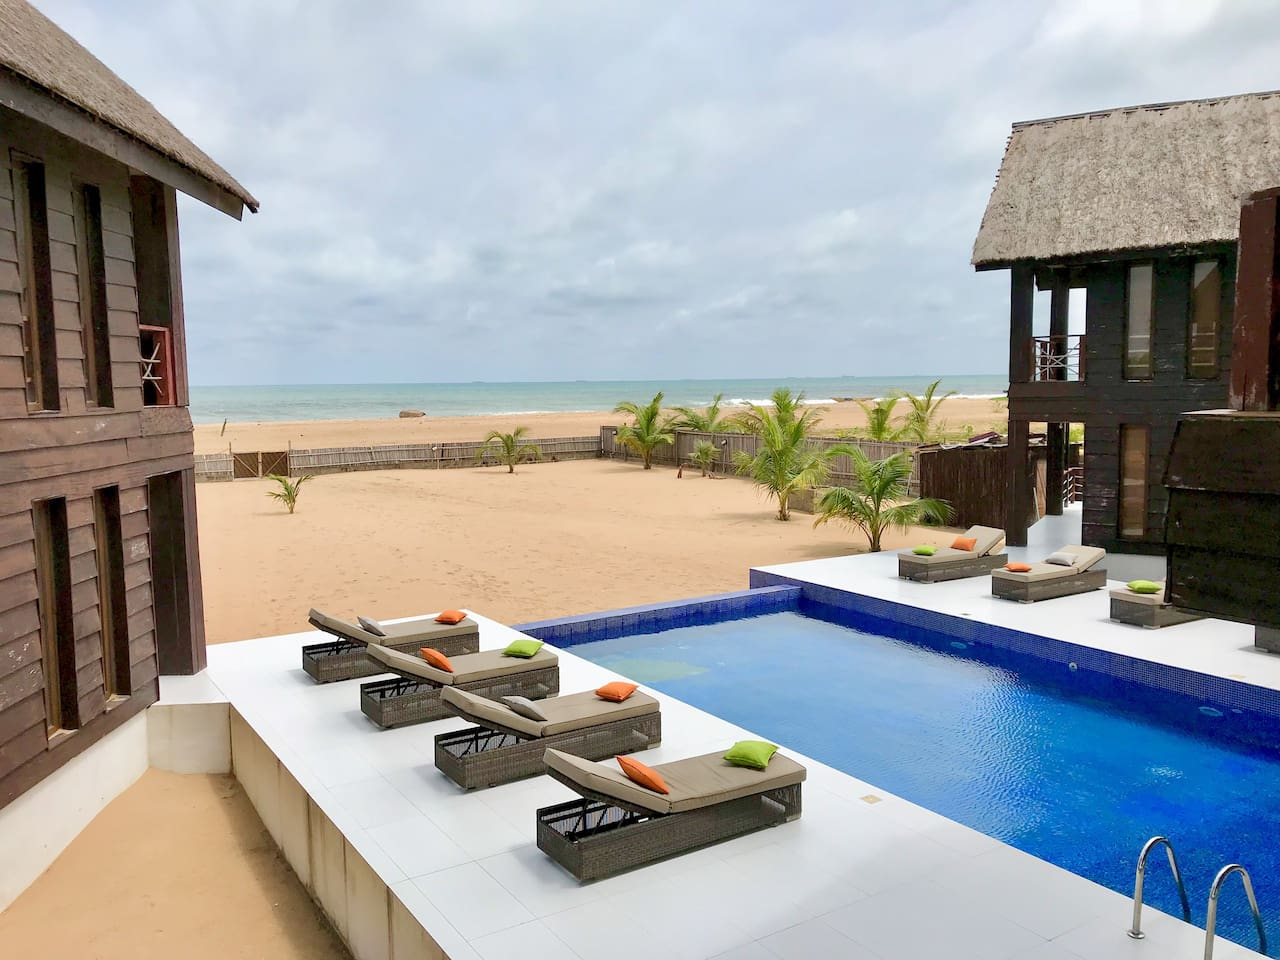 Hov Beach Resort Photo Hov Beach Resort 4 Four Exotic Must Visit Beach Houses In Lagos